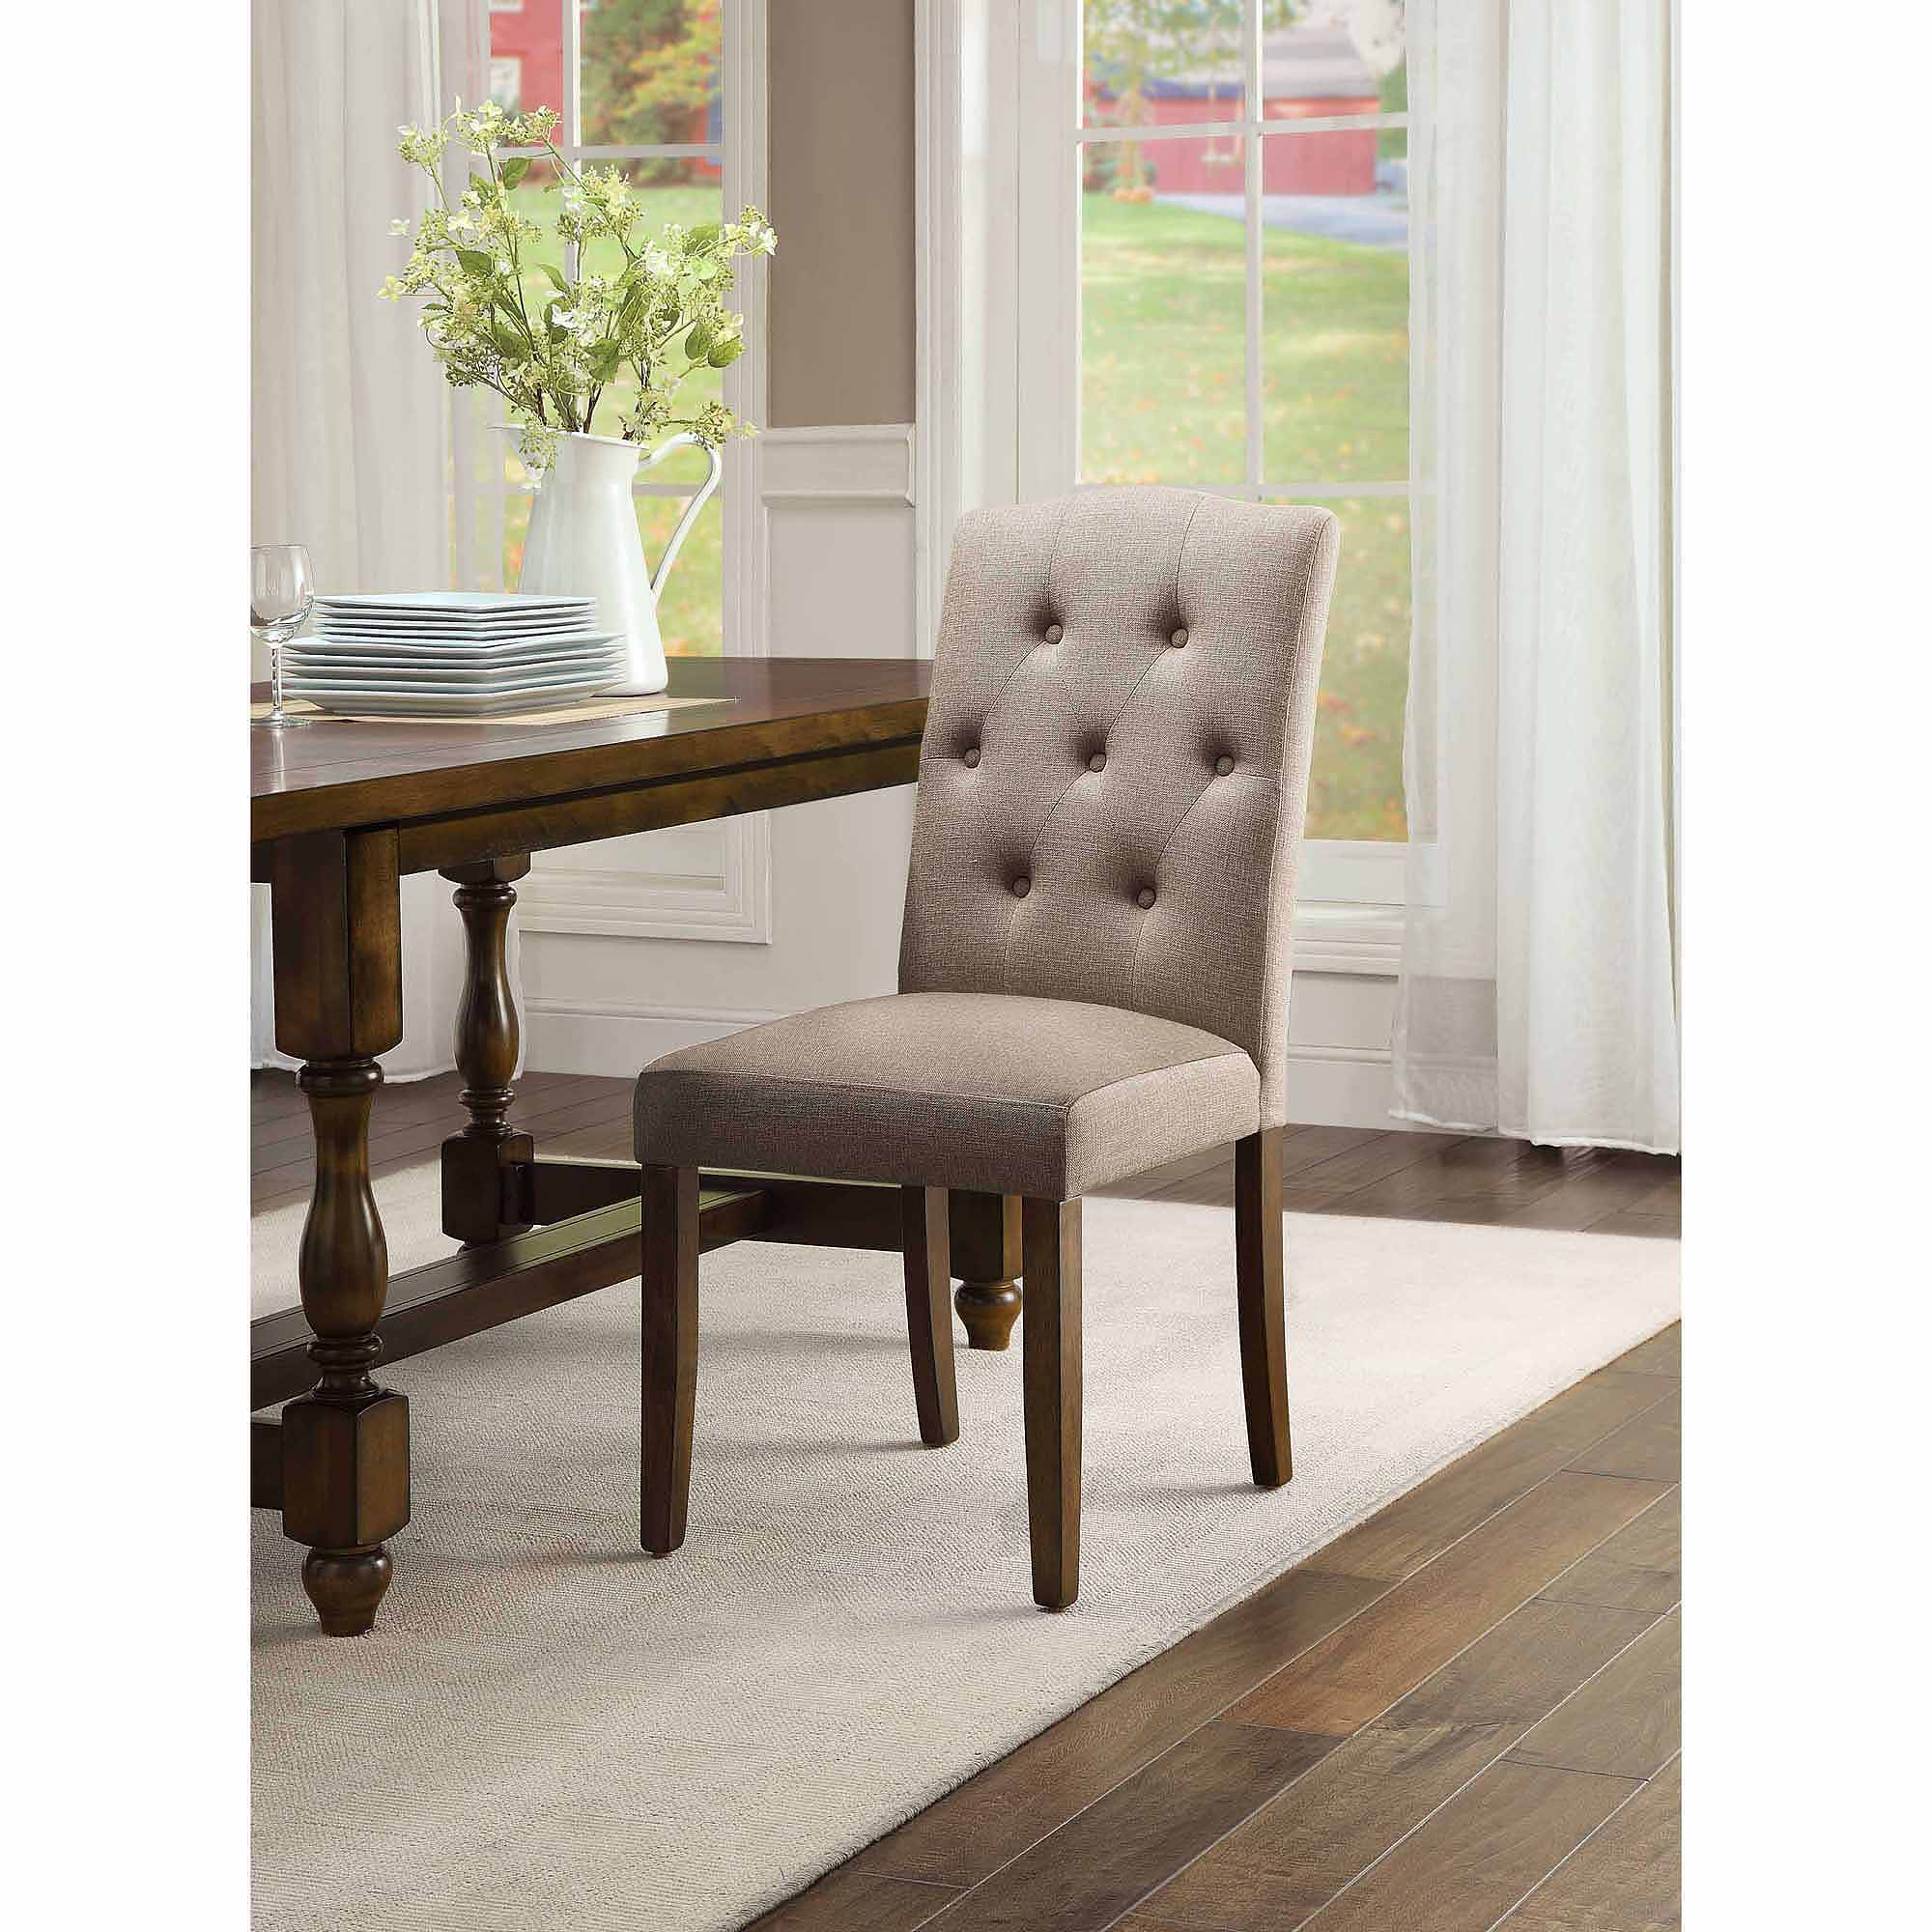 Better Homes and Gardens Providence Chair Beige Walmartcom